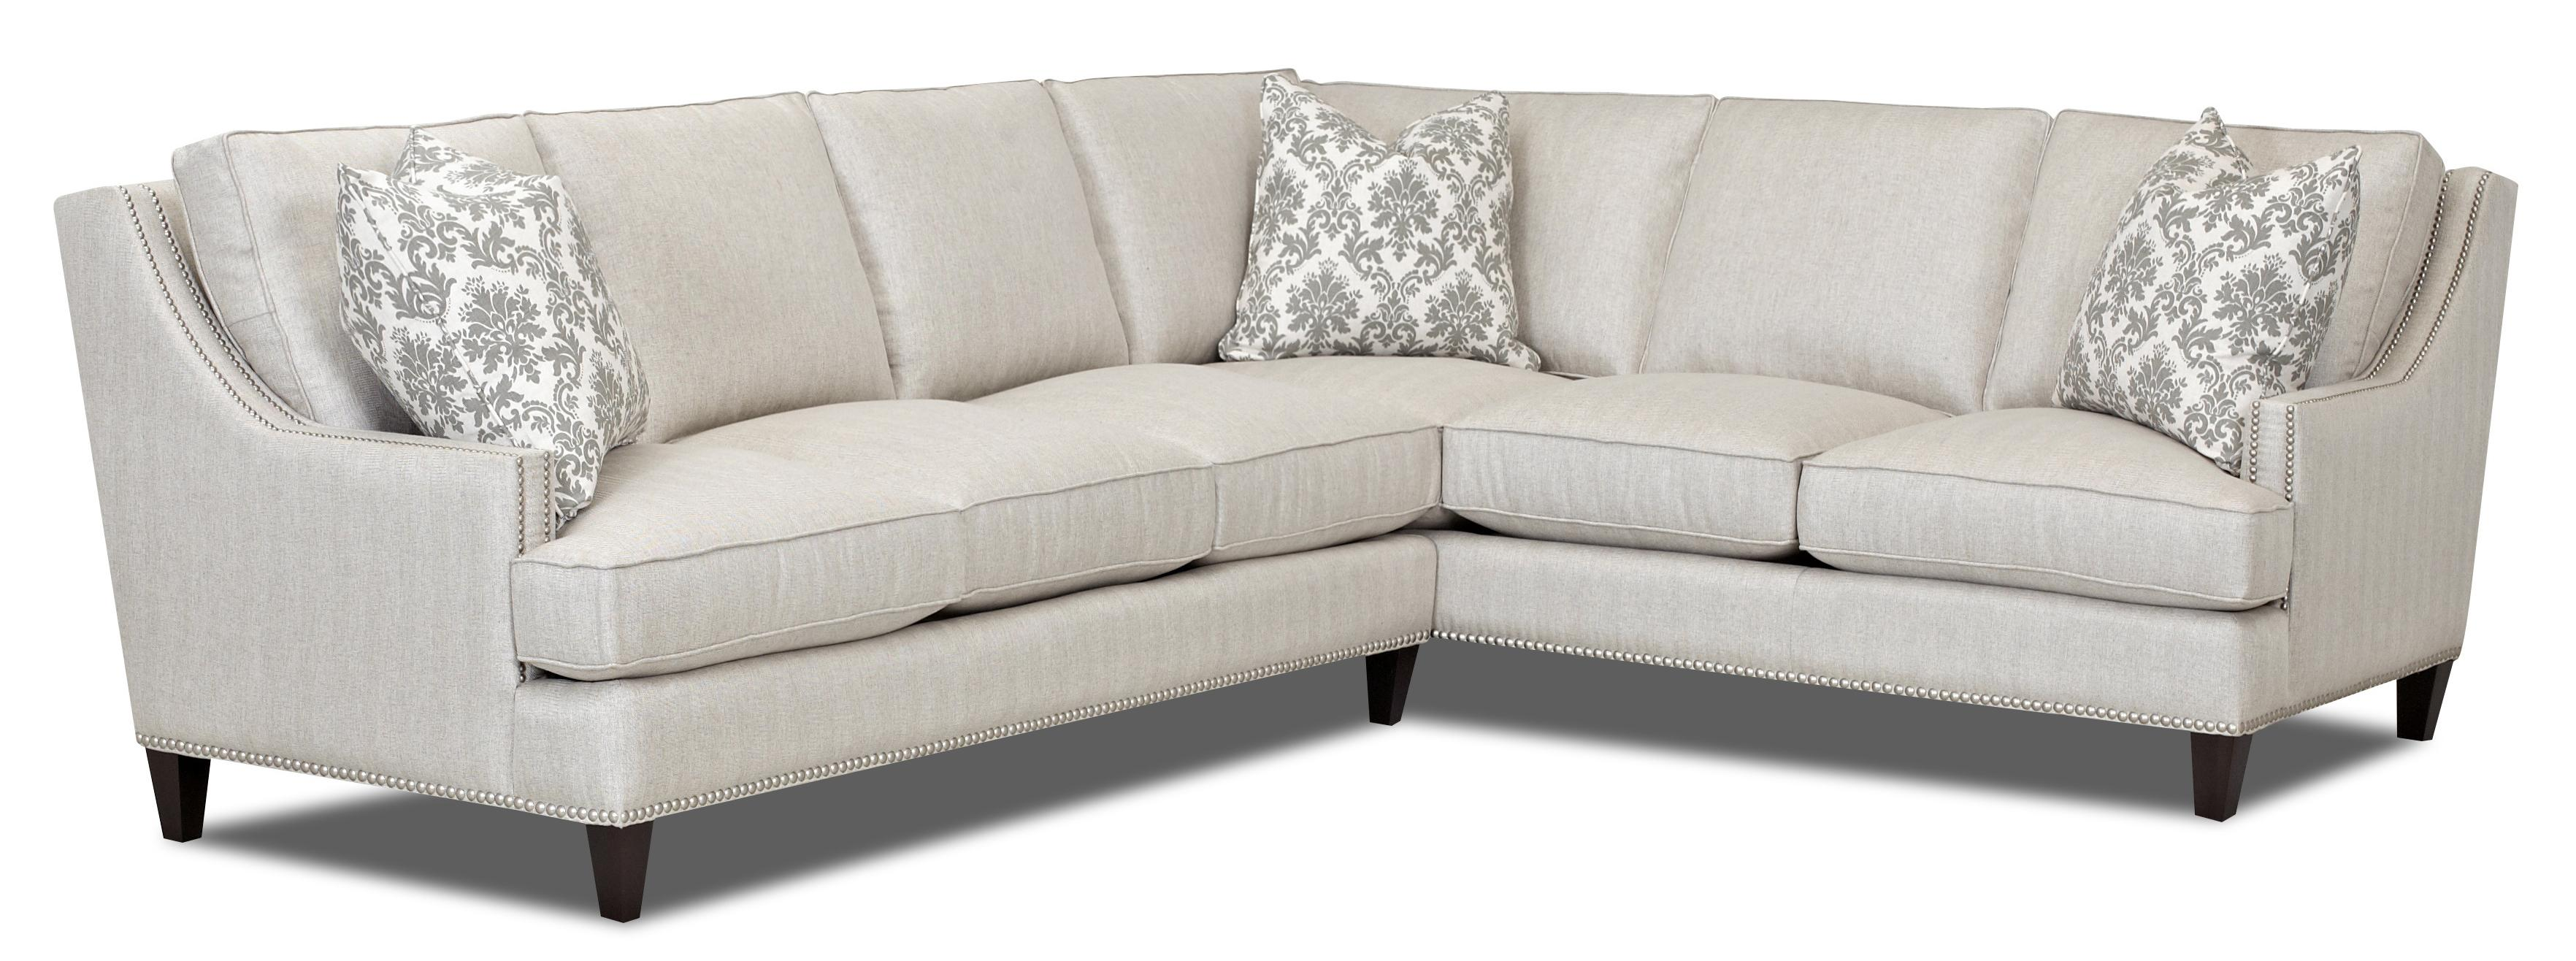 Klaussner Duchess Transitional 2 Piece Sectional   AHFA   Sofa Sectional  Dealer Locator